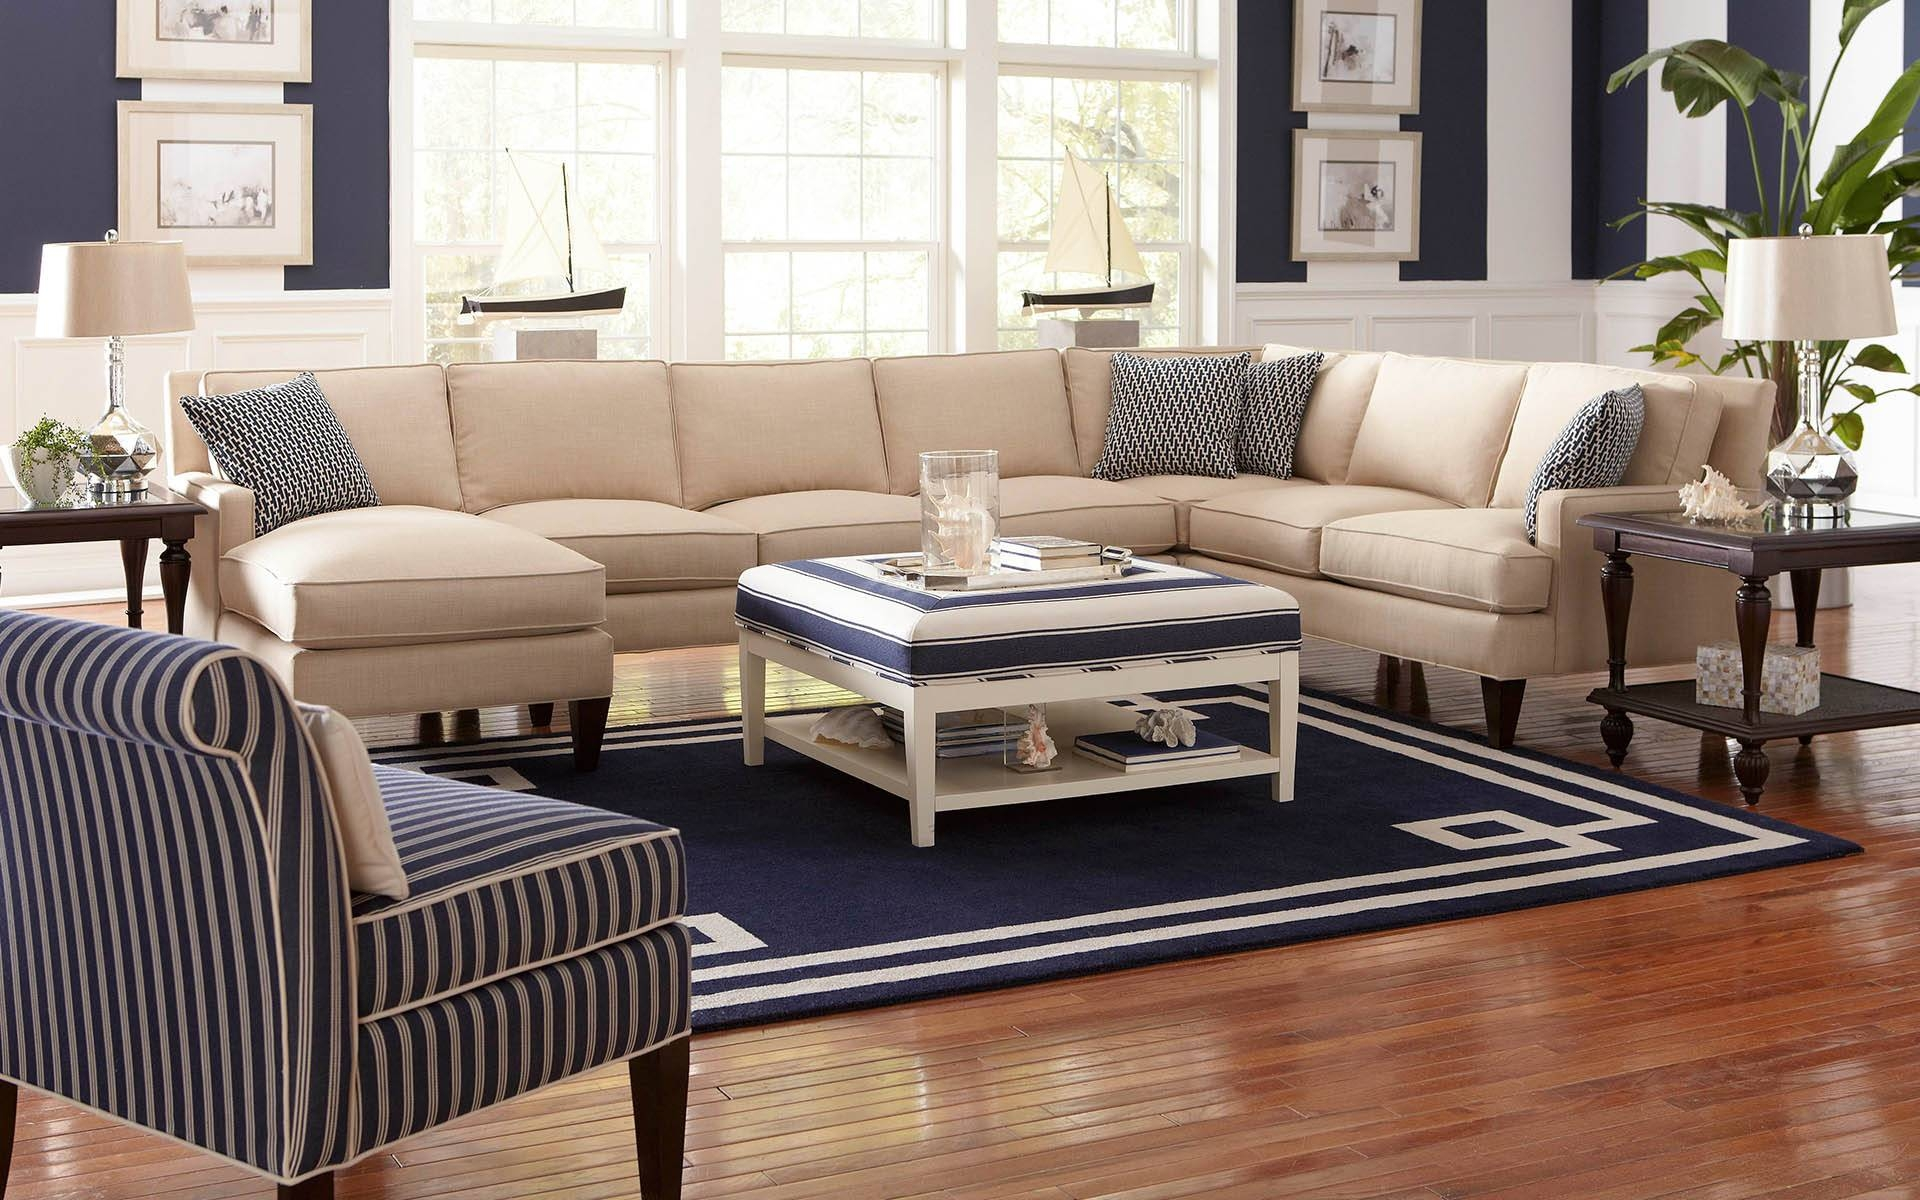 Braxton Sectional Sofa With Ideas Image 26378 | Kengire in Braxton Sectional Sofa (Image 10 of 30)